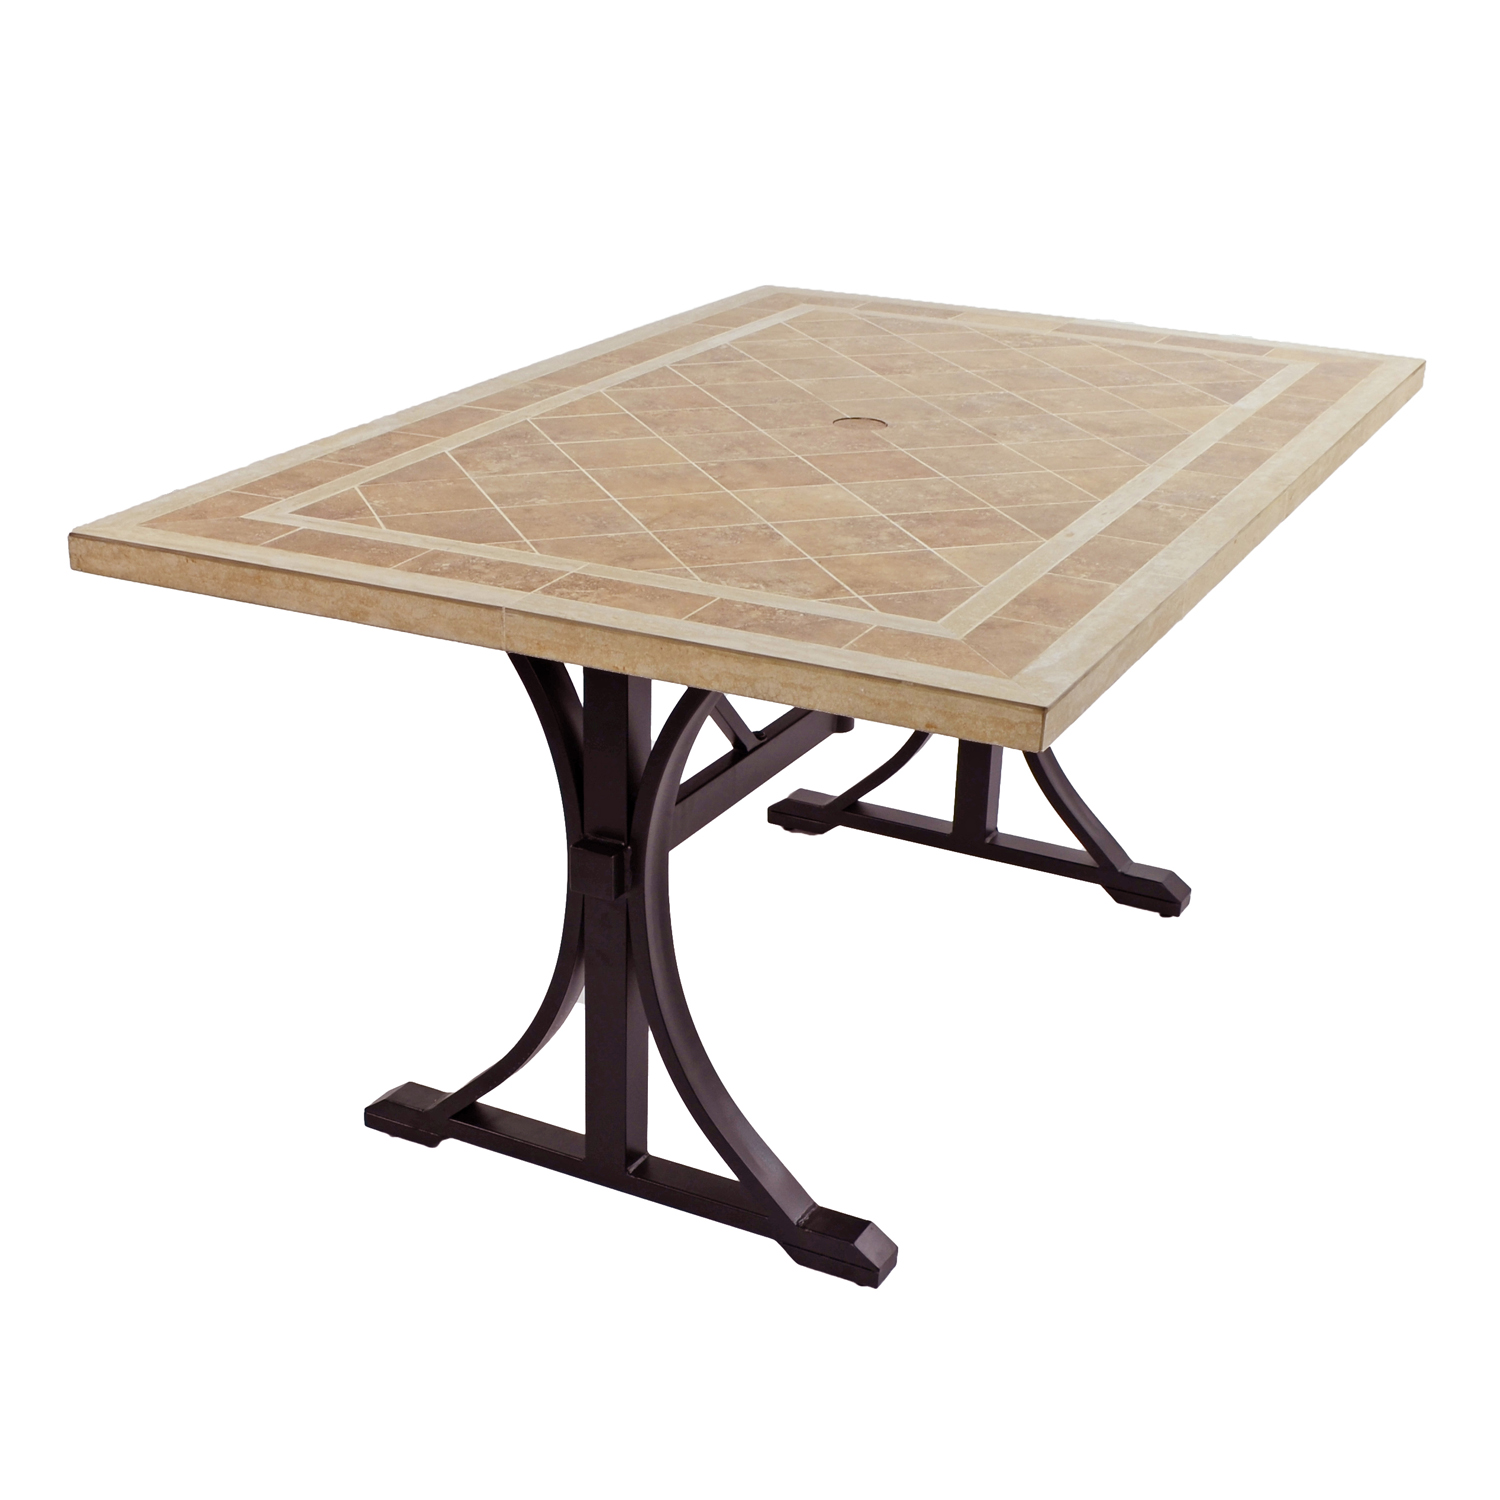 HAMPTON DINING TABLE PROFILE